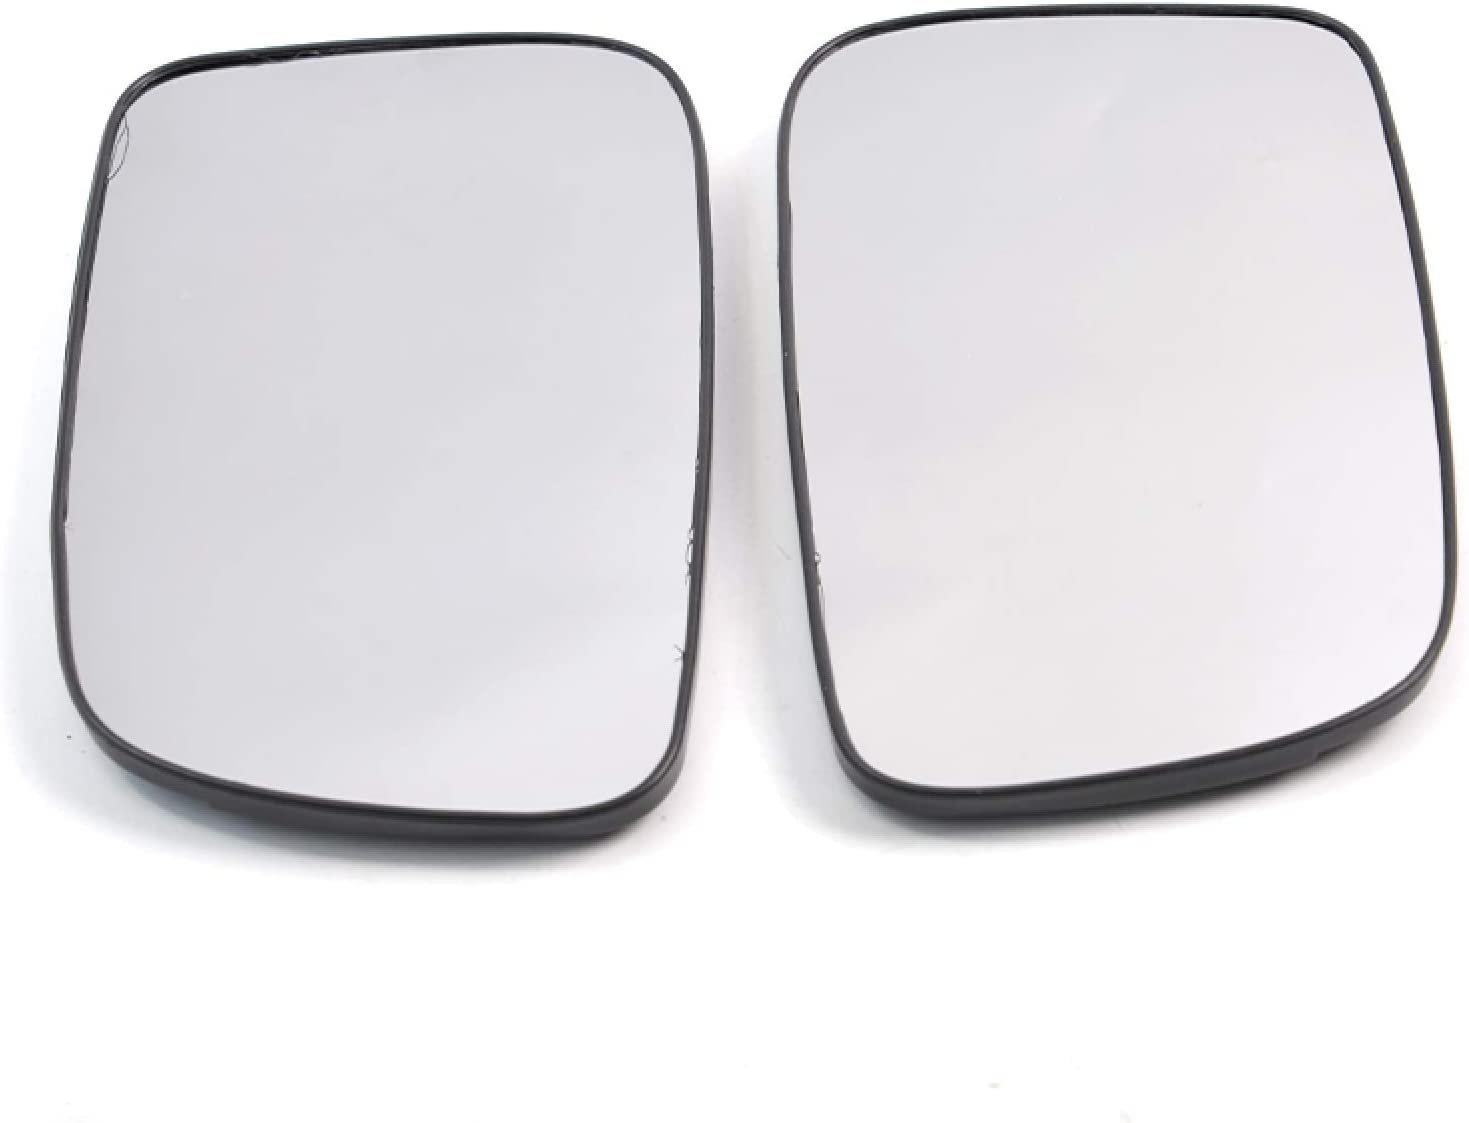 BYWWANG Clearance SALE Limited time CAR Heated Mirror Glass Corolla P 2004-2007 Toyota Kansas City Mall for